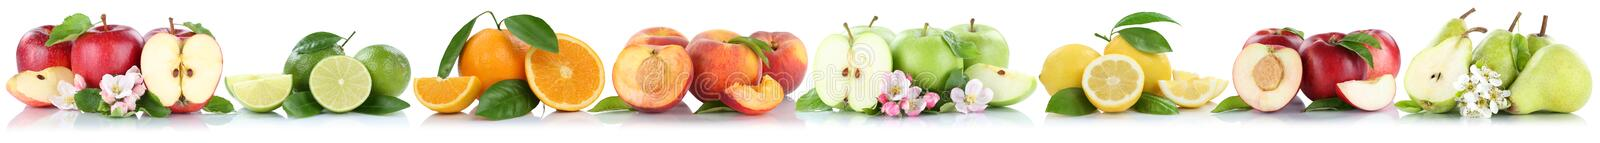 Fruits apple orange lemon nectarine apples oranges fruit in a row isolated on white royalty free stock images